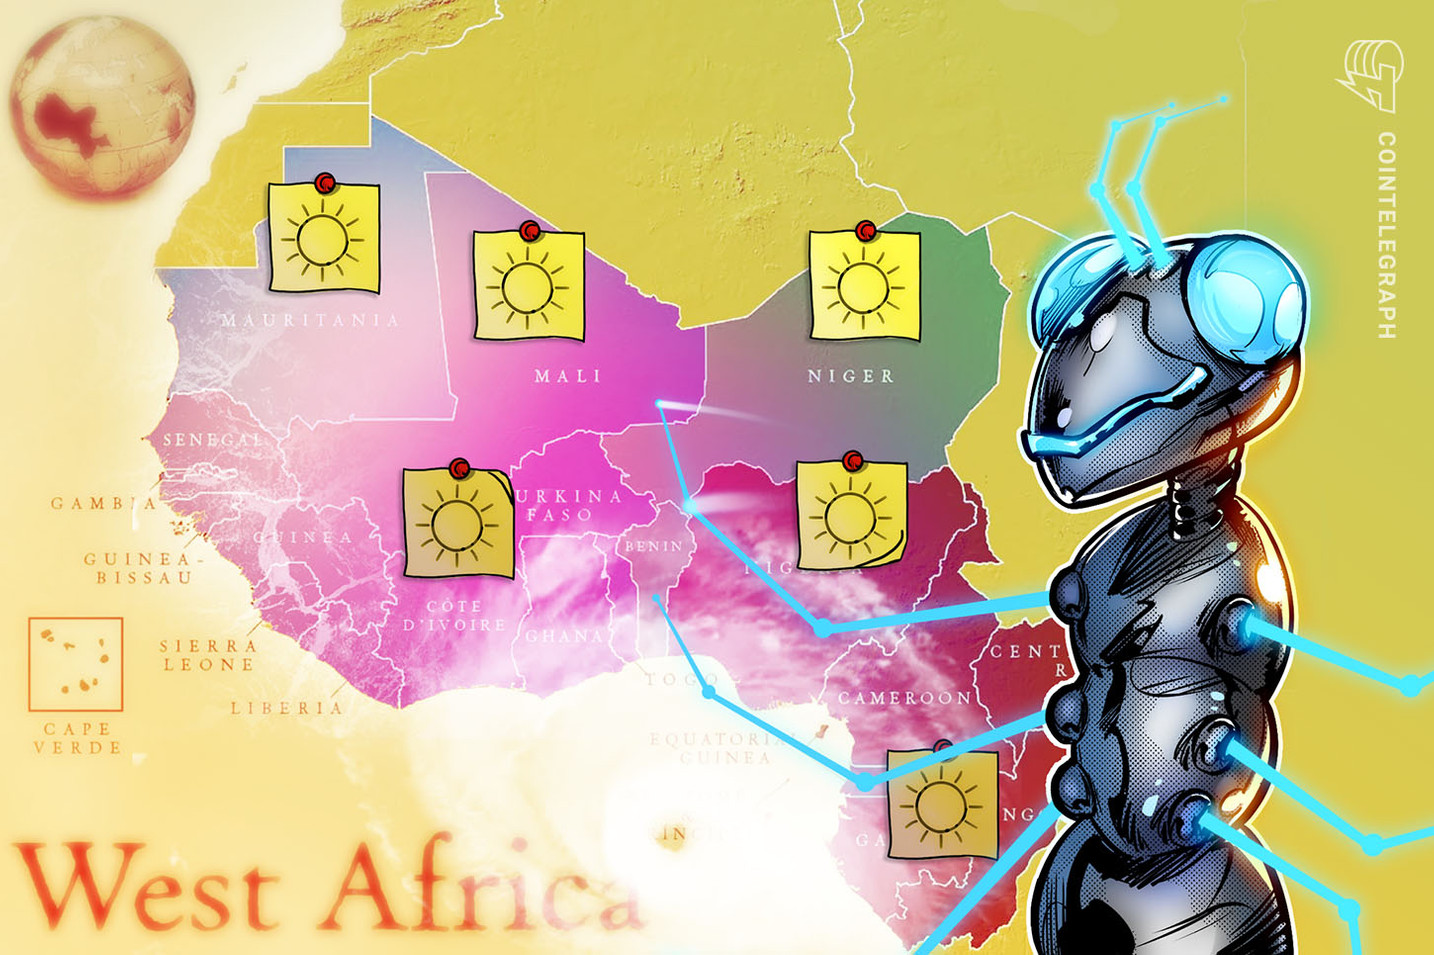 Weather-tracking blockchain in West Africa, but transparency on a raincheck